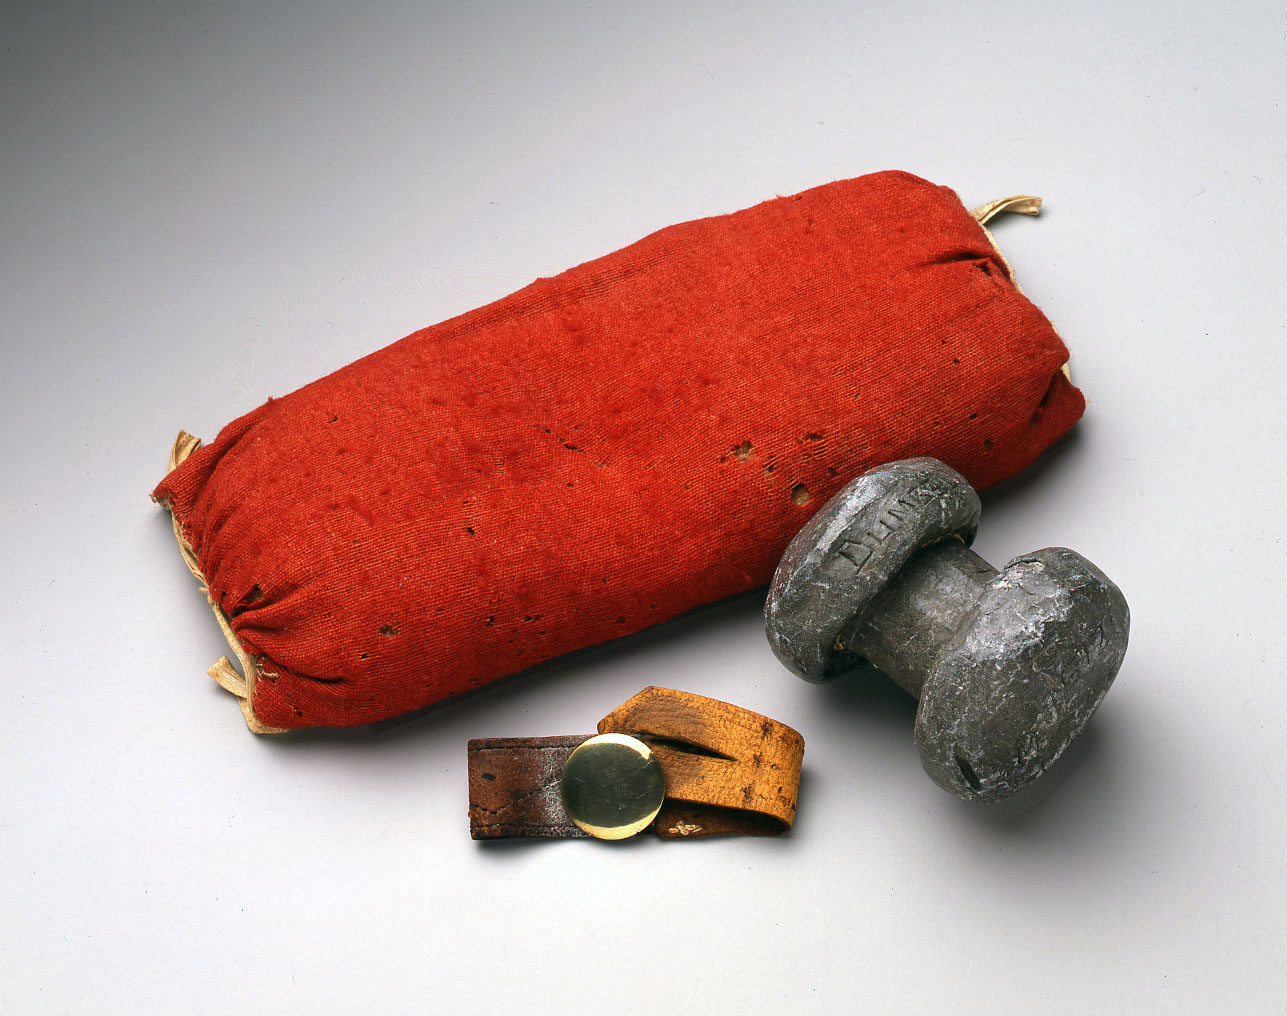 Jefferson's wrist cushion, dumbell, and wrist strap